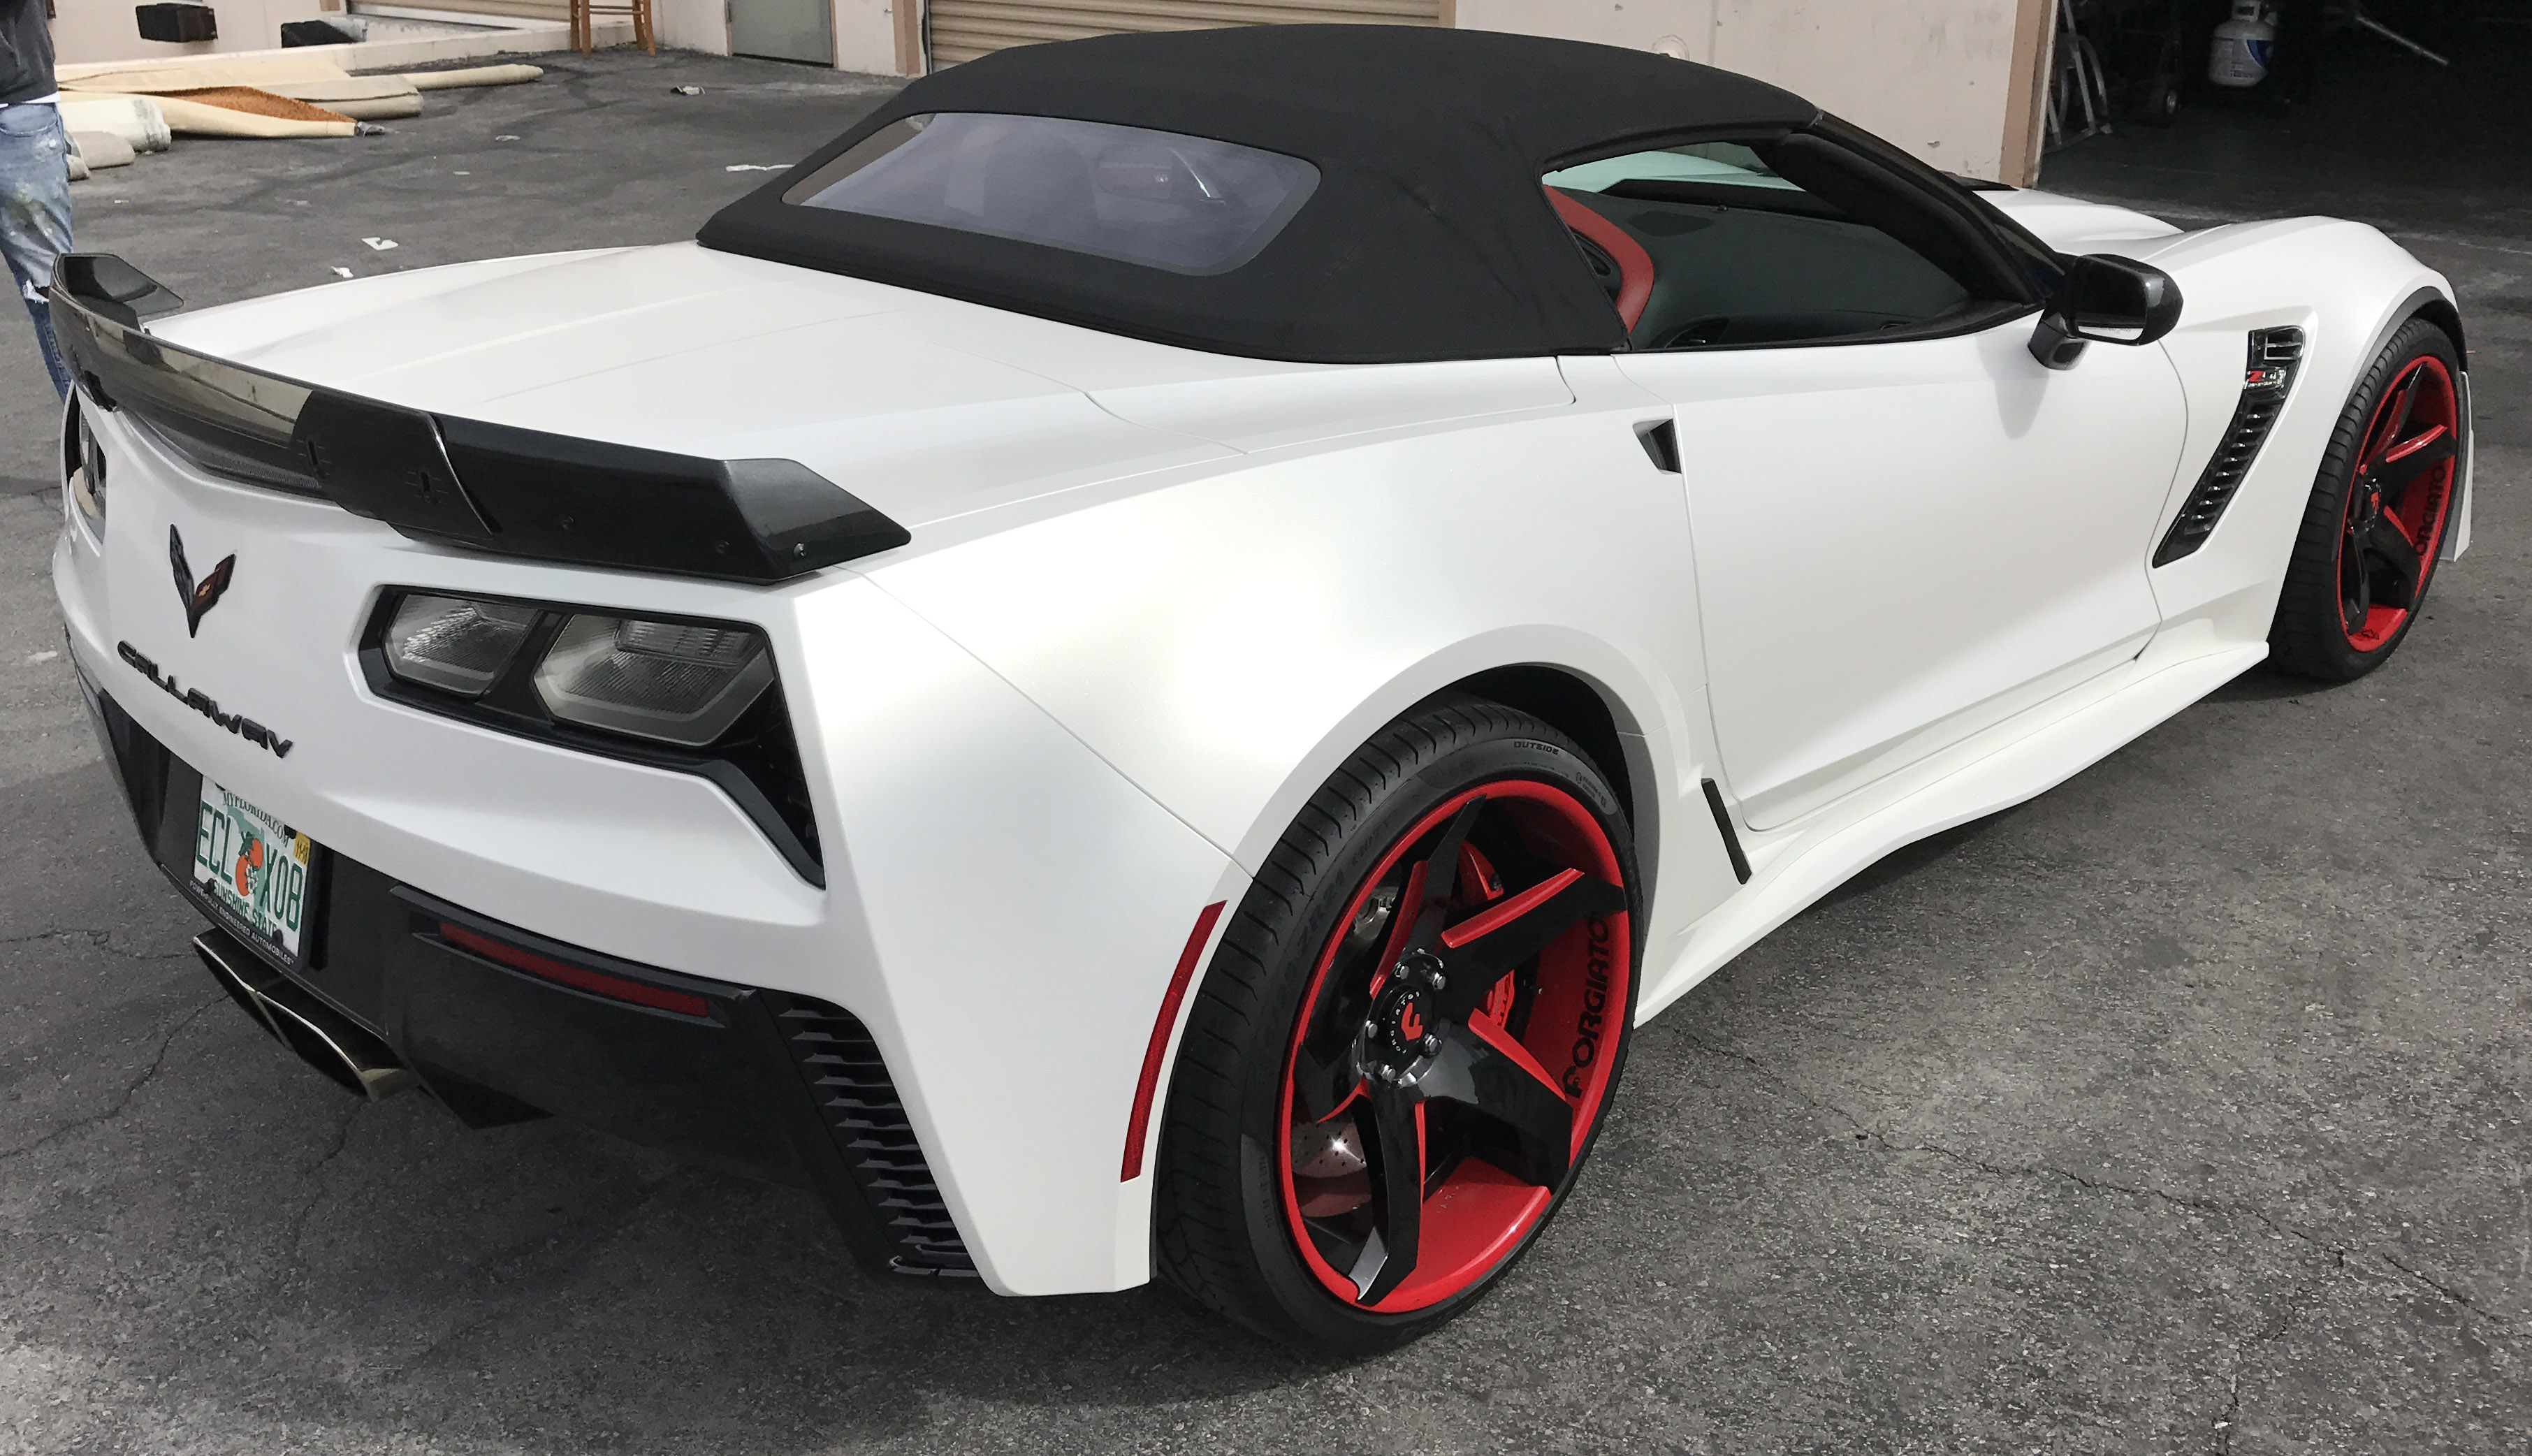 2017 Corvette Stingray Callaway 757 Pearl White Car Wrap